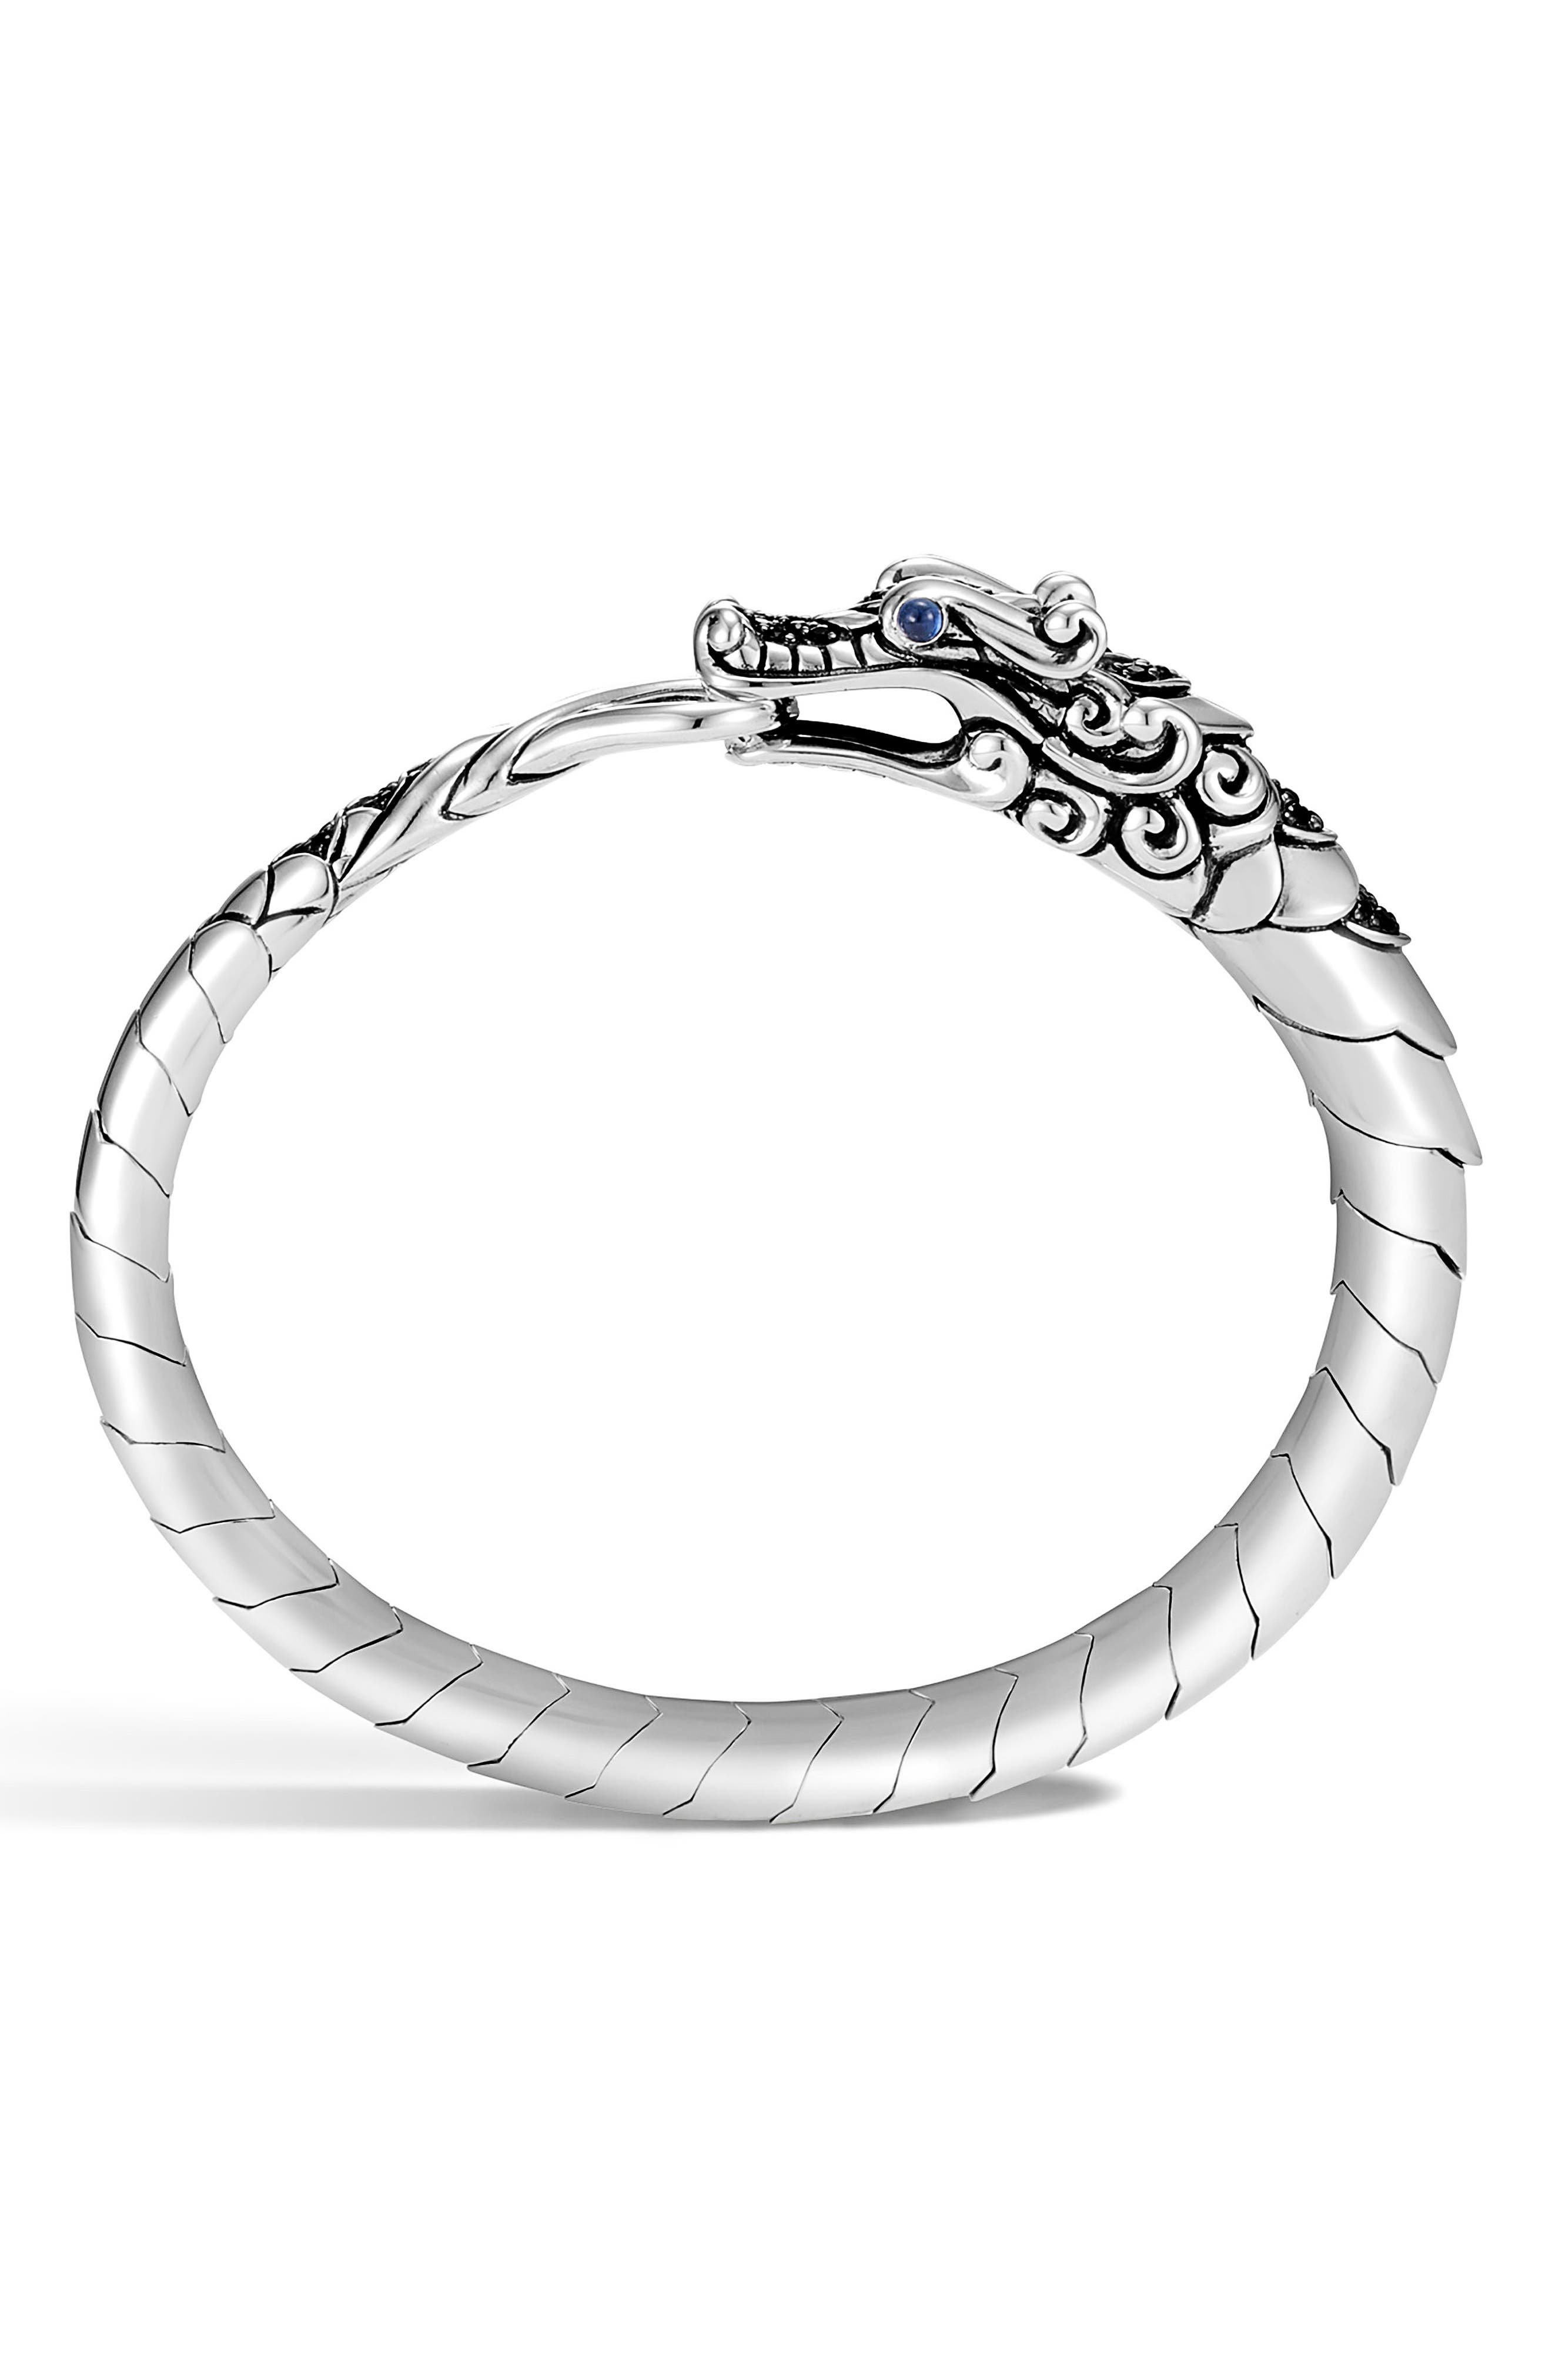 John Hardy Legends Naga Small Cuff Bracelet